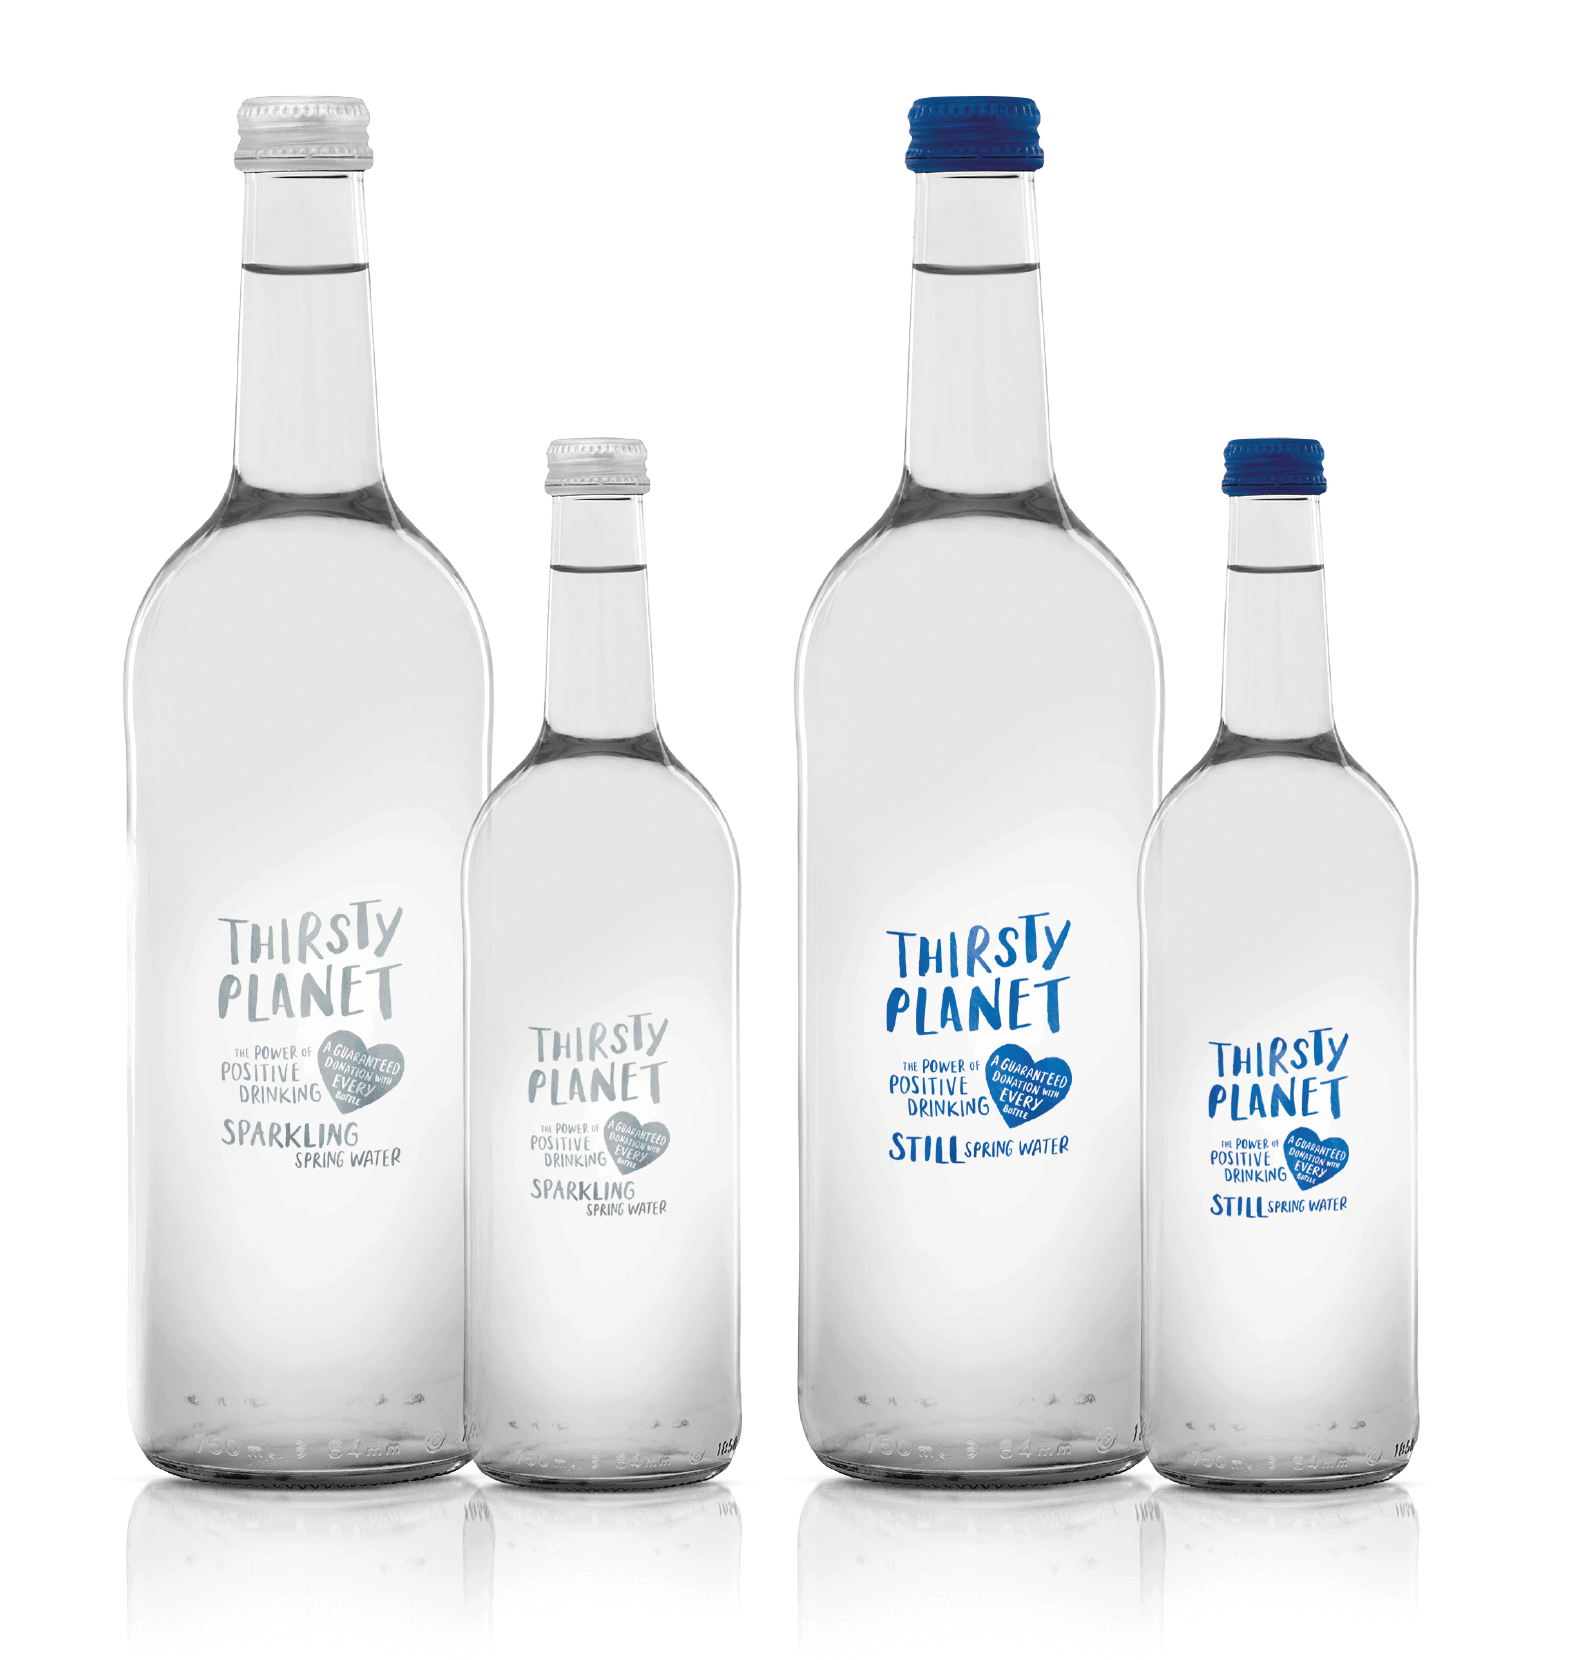 Thirsty Planet's Glass bottle range.